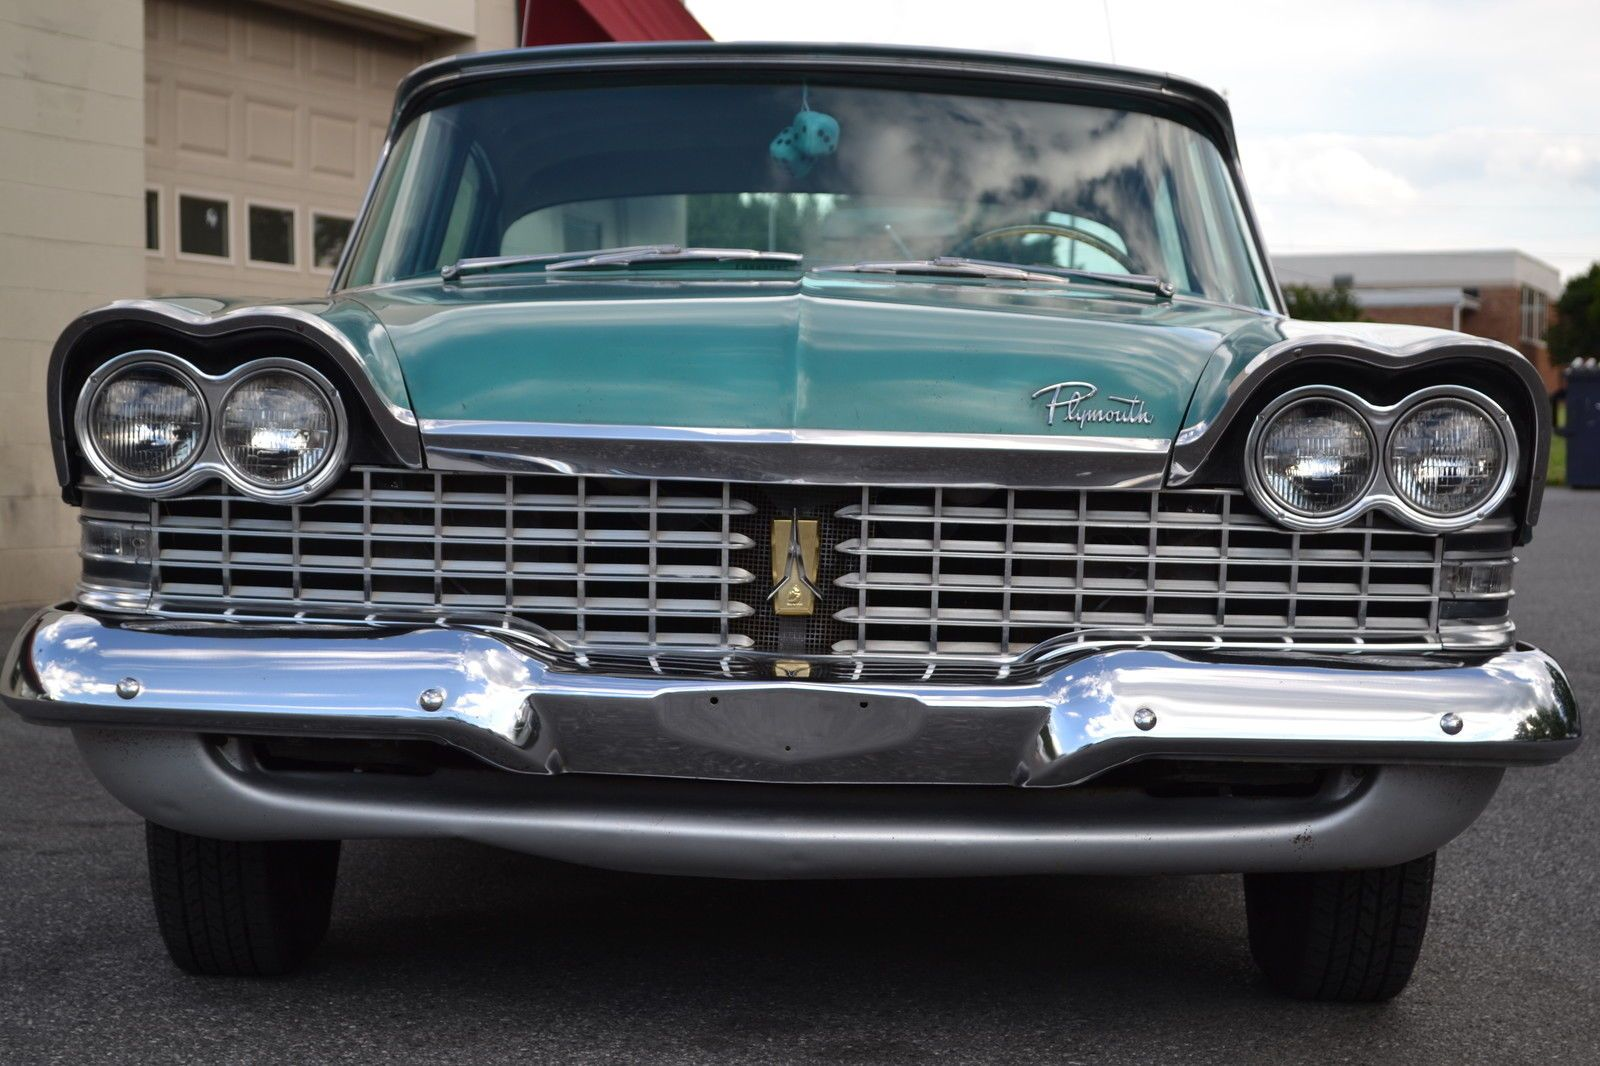 1959 Plymouth Fury GOLDEN COMMANDO   Plymouth fury, Plymouth and ...